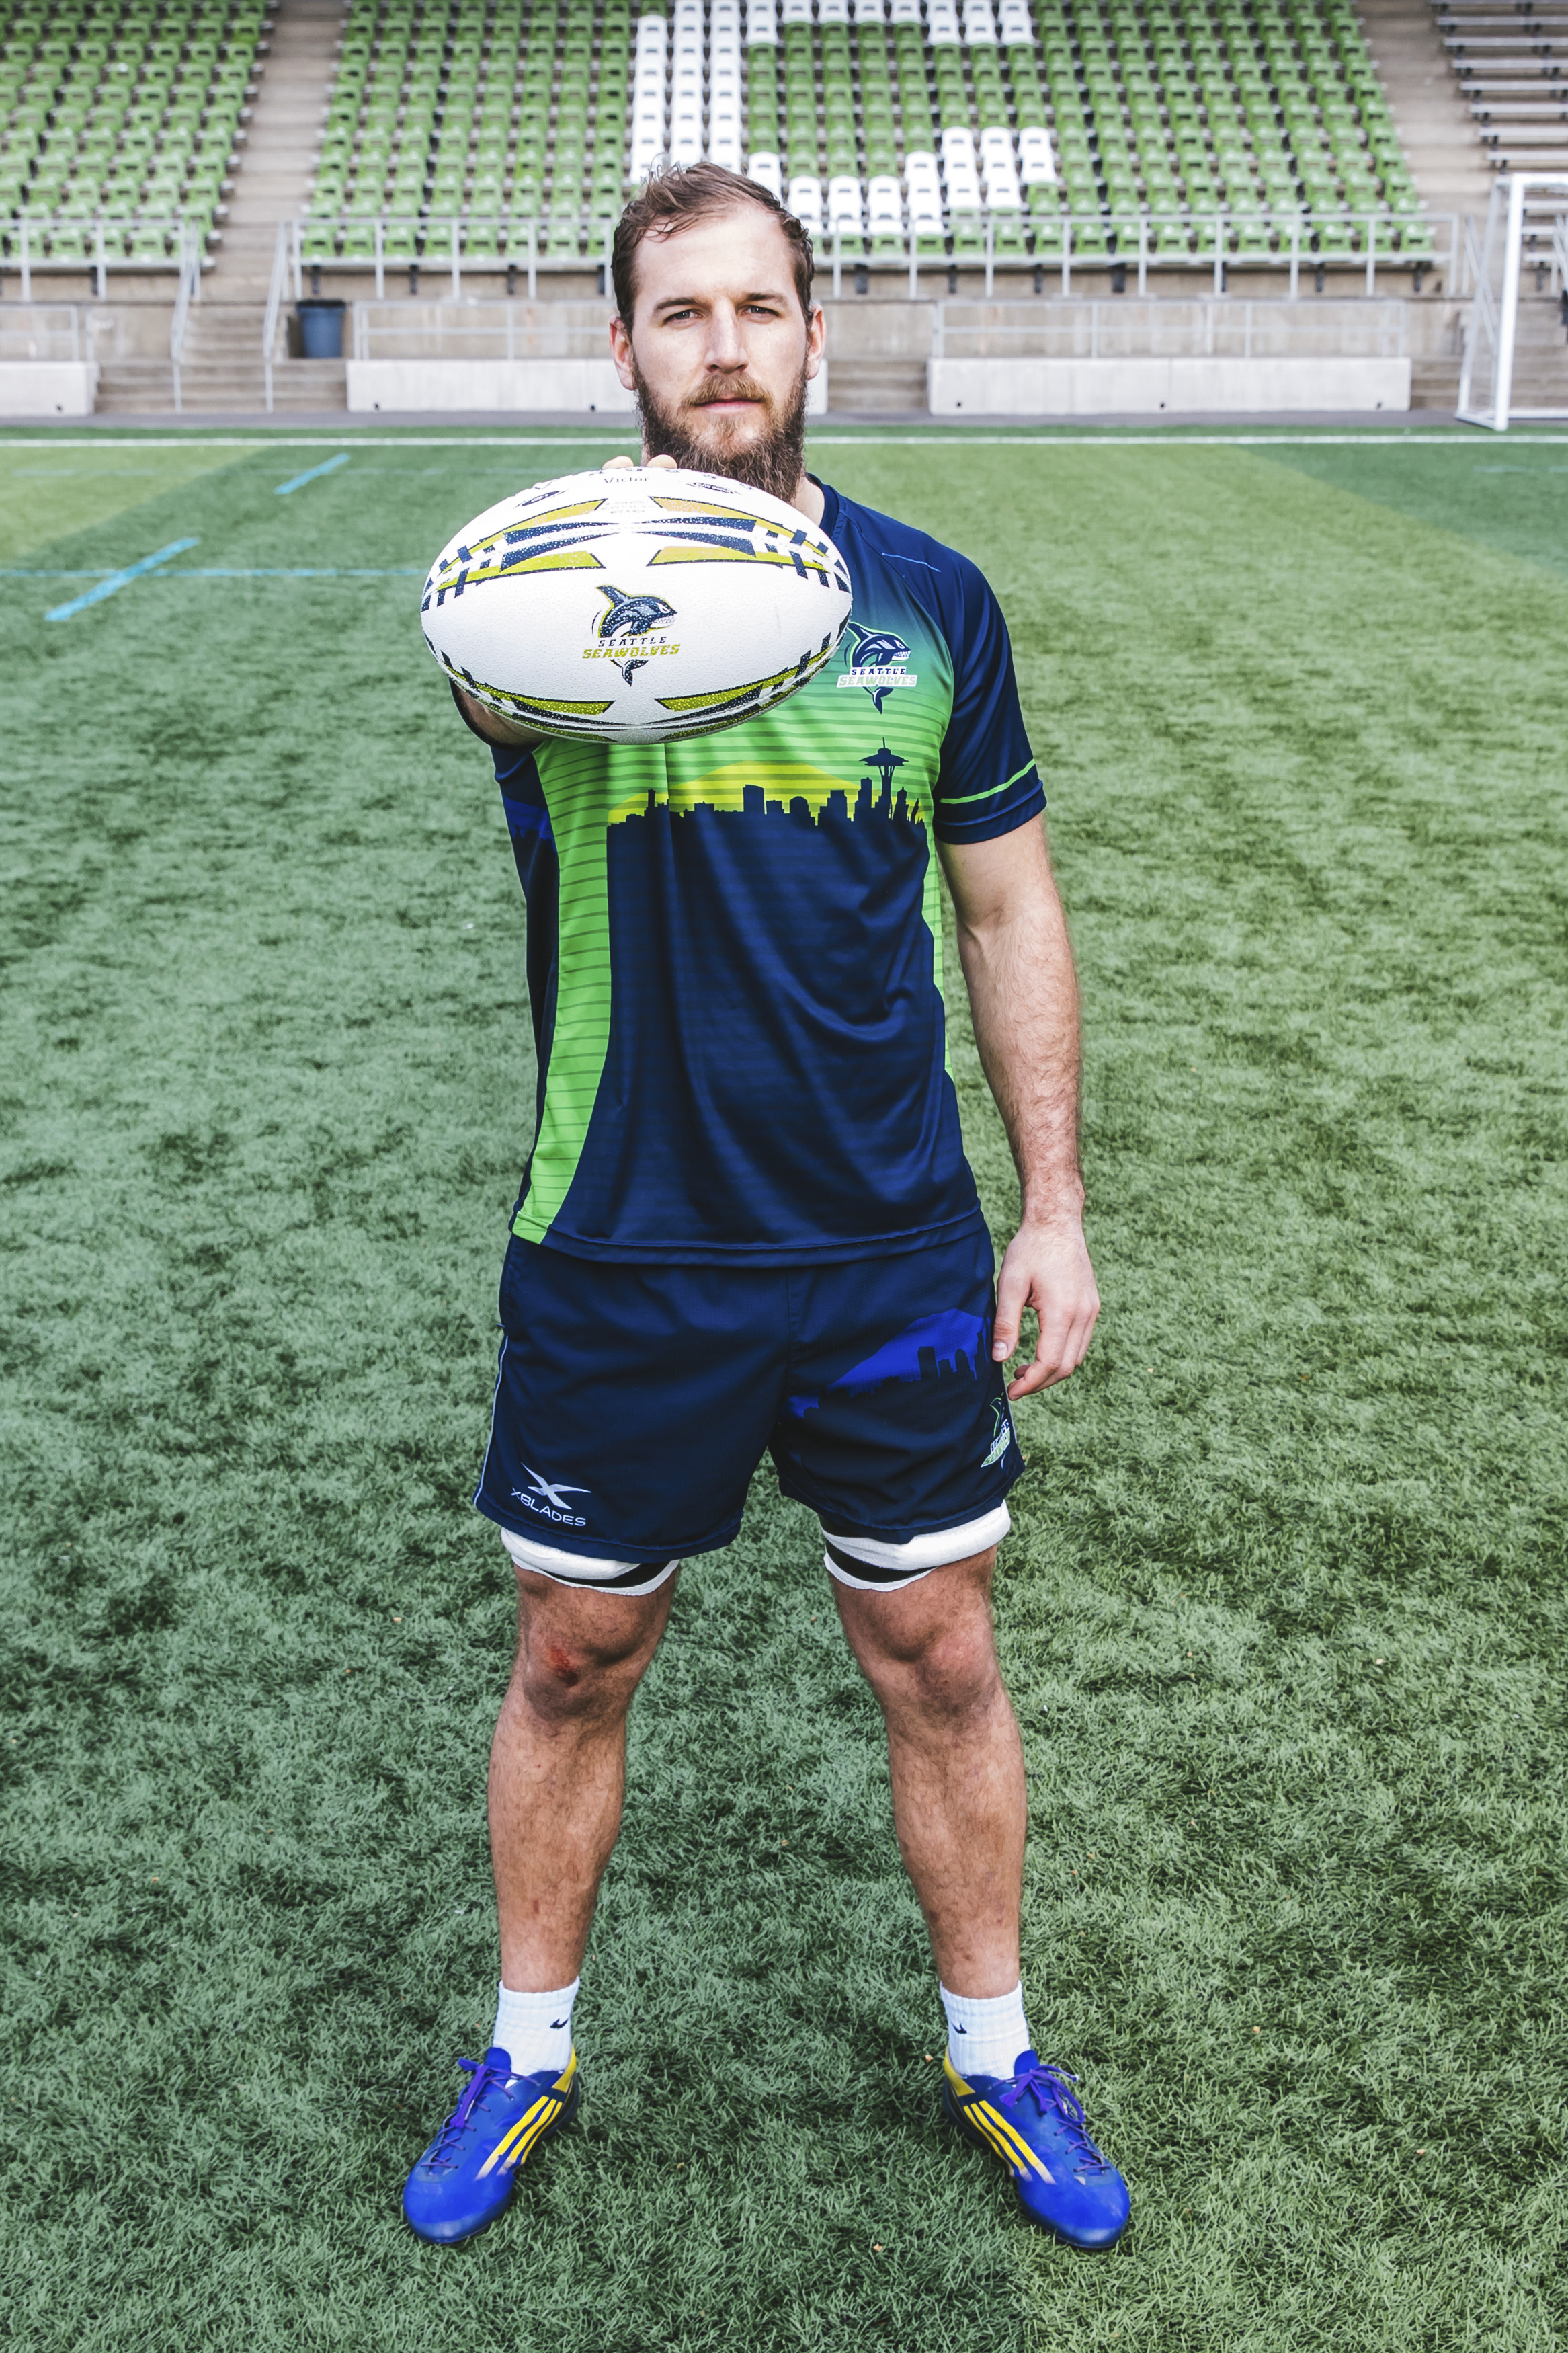 Hailing from Pretoria, South Africa, Riekert Hattingh, 24,  plays 8 Man on the Seattle Seawolves. His favorite movie is Yellowstone. (Image: Sunita Martini / Seattle Refined).